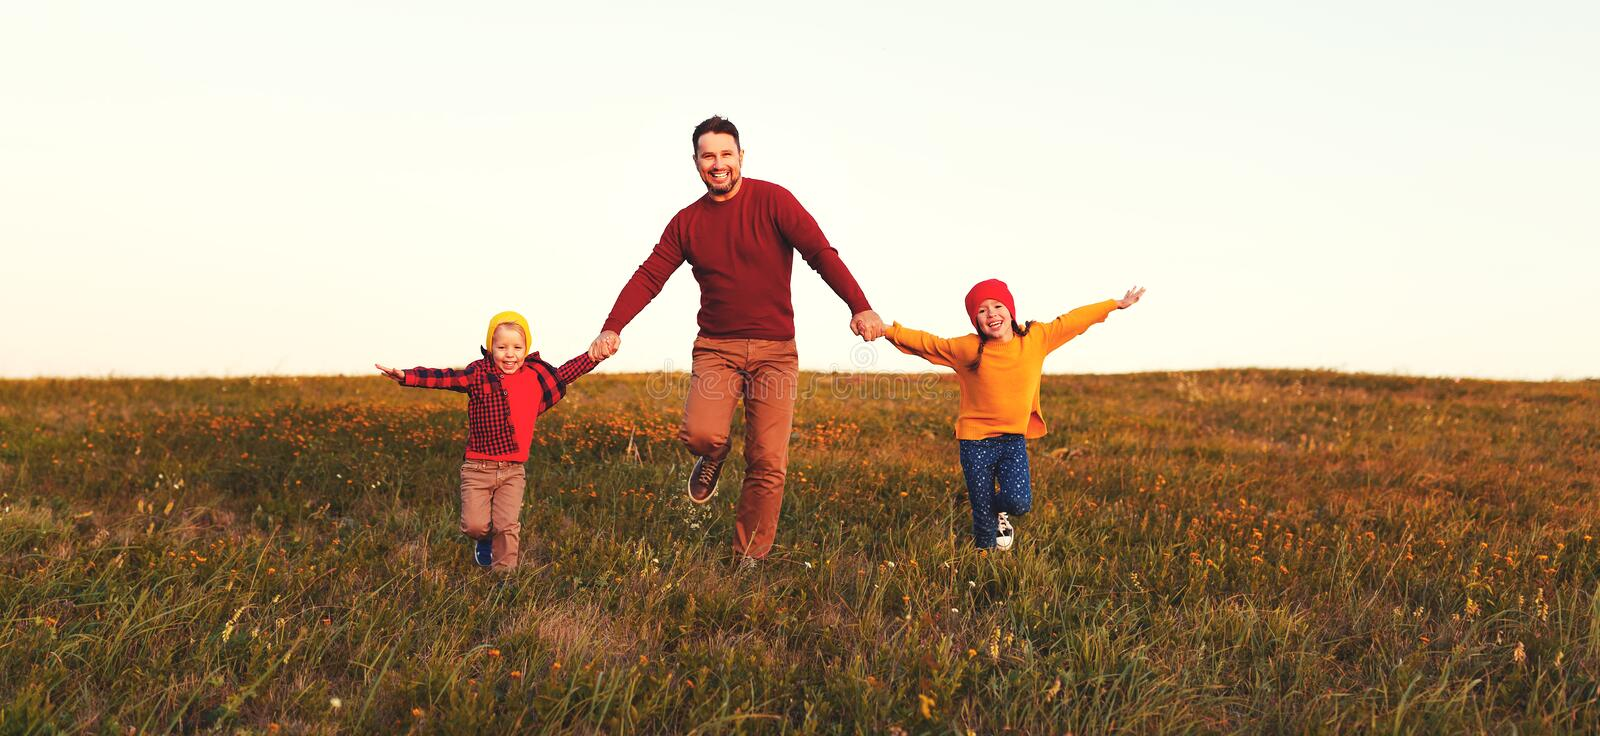 Happy family father and children in autumn nature at sunset royalty free stock image